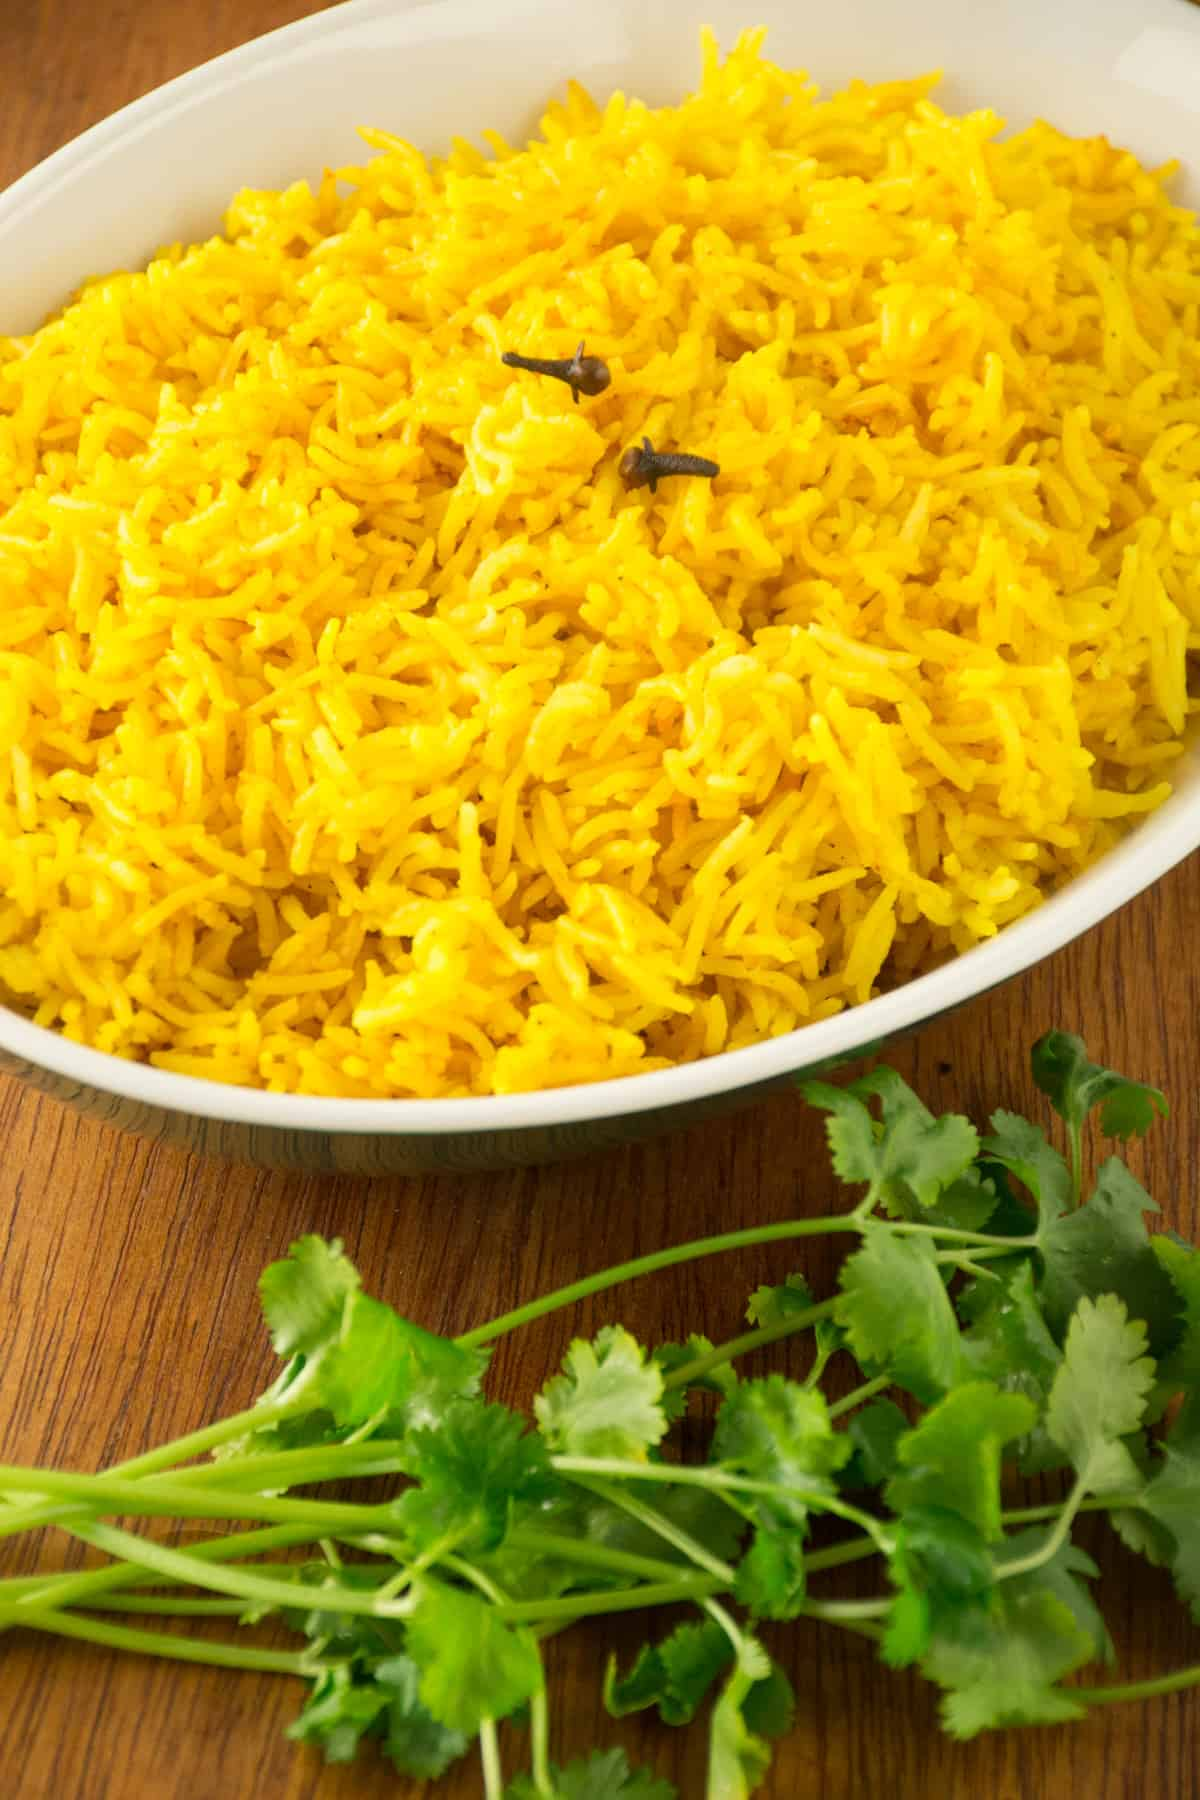 A dish of turmeric rice, with two whole cloves on top.